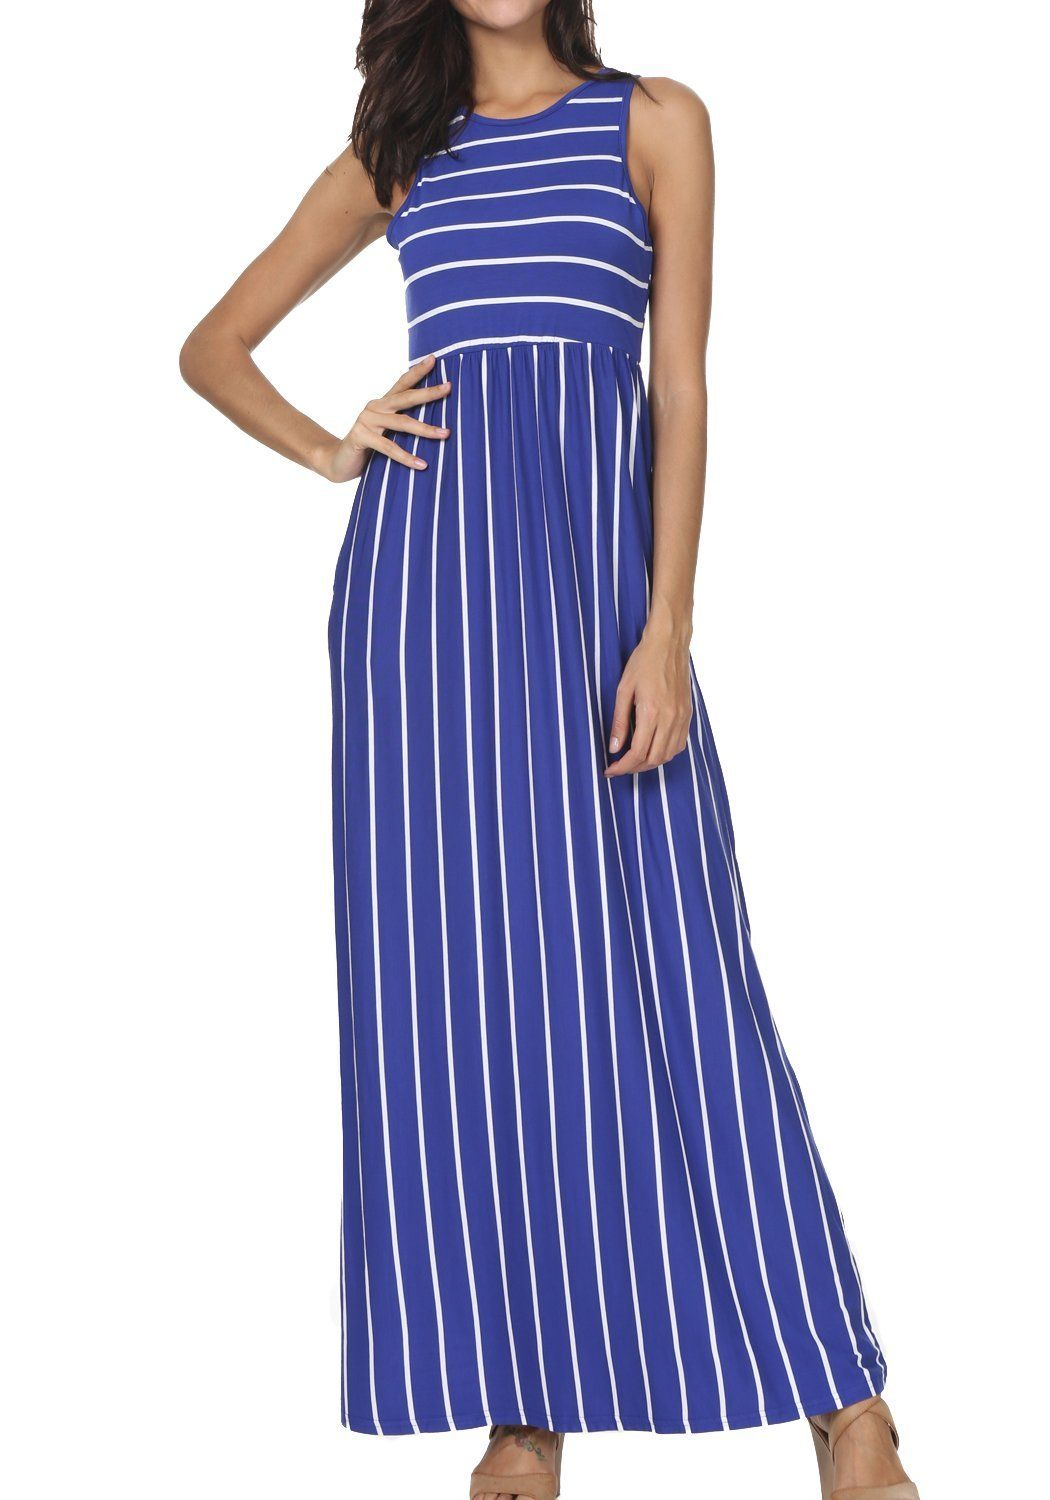 b5c7c33a06b1d Women's Summer Sleeveless Striped Pockets Flowy Casual Long Maxi Dress